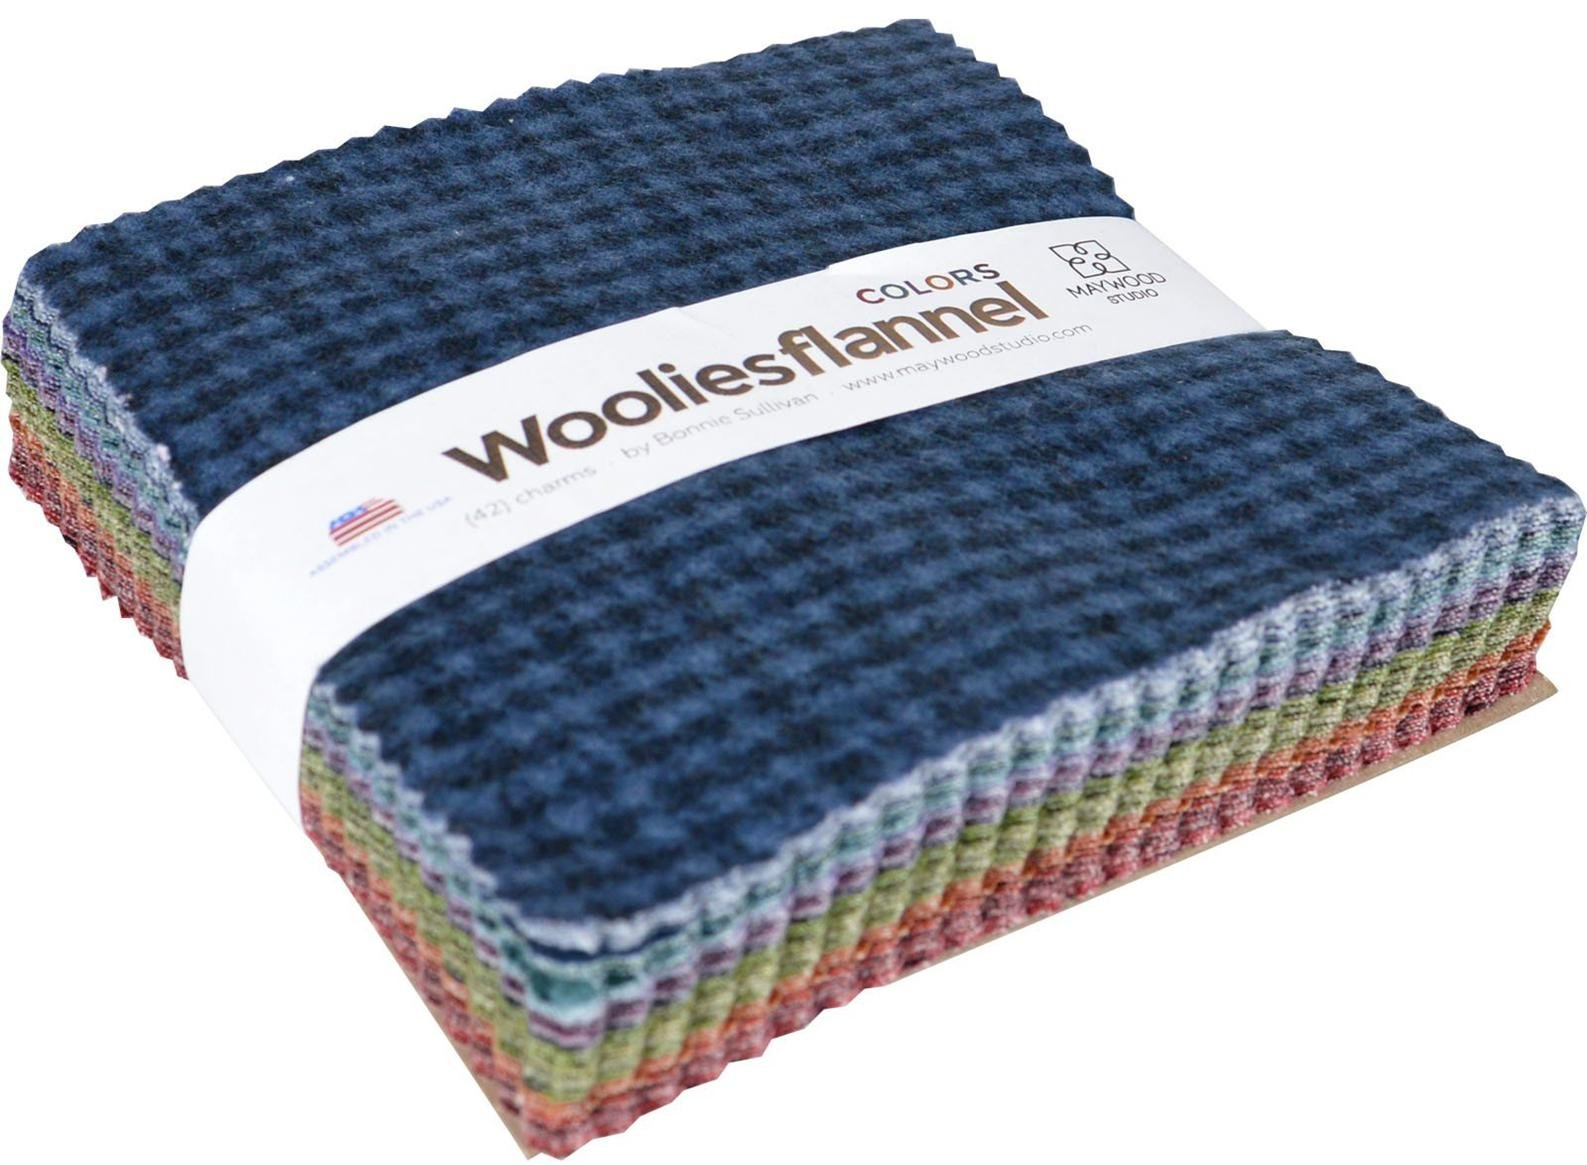 Woolies Flannel 5 Squares Multi